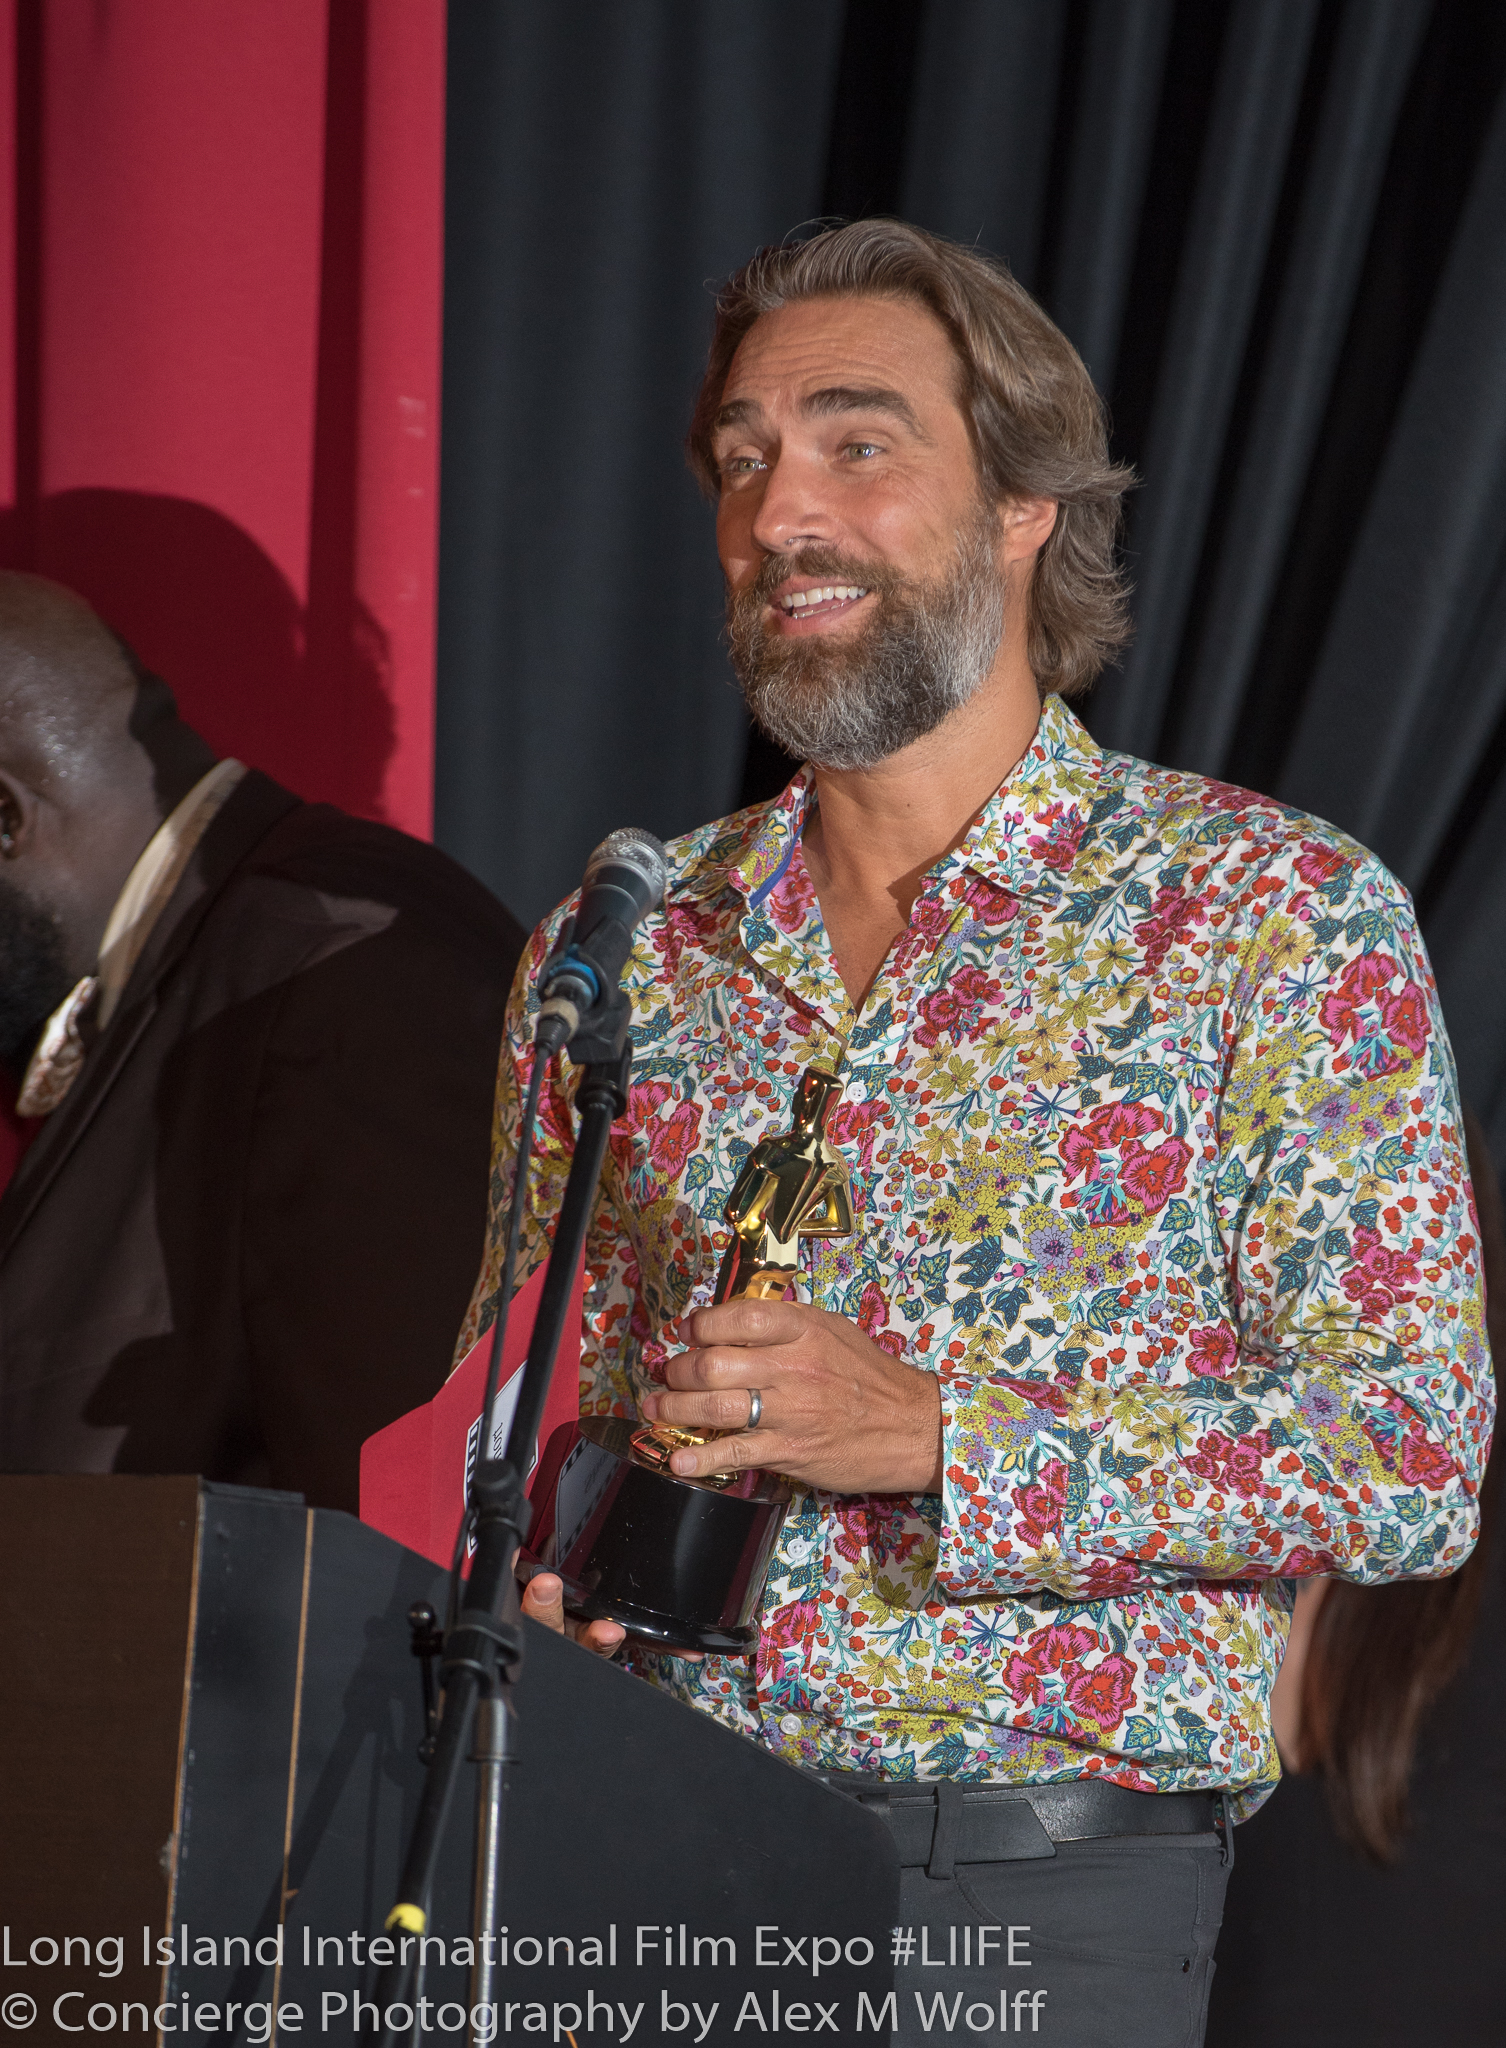 Lukas Hassel accepting his award at the Long Island International Film Expo